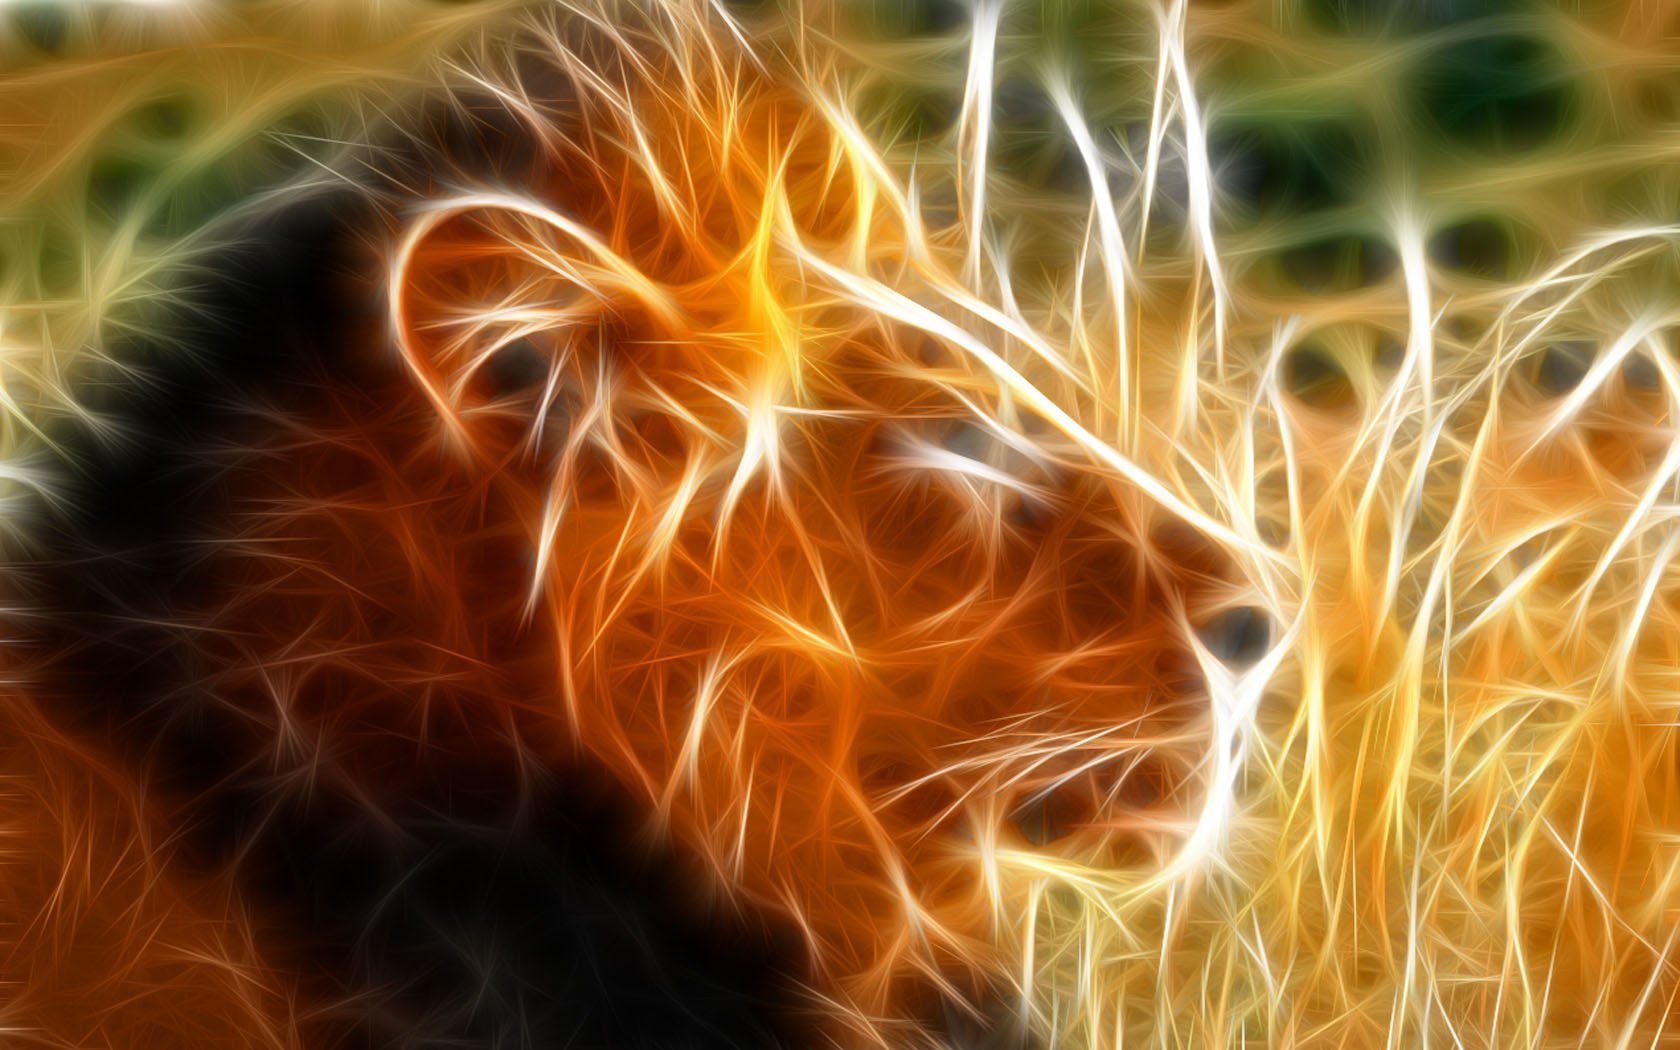 947 Lion HD Wallpapers | Backgrounds - Wallpaper Abyss